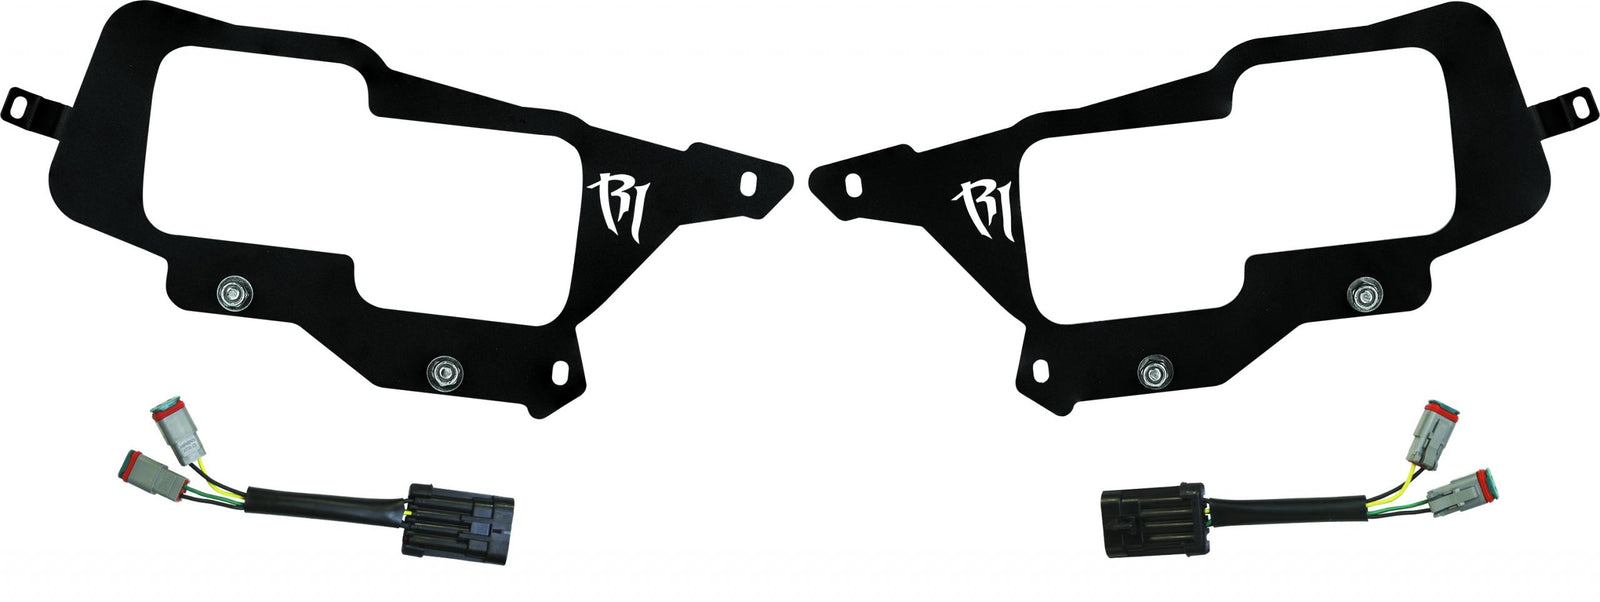 14-16 Polaris RZR XP1000 Headlight Mount RIGID Industries